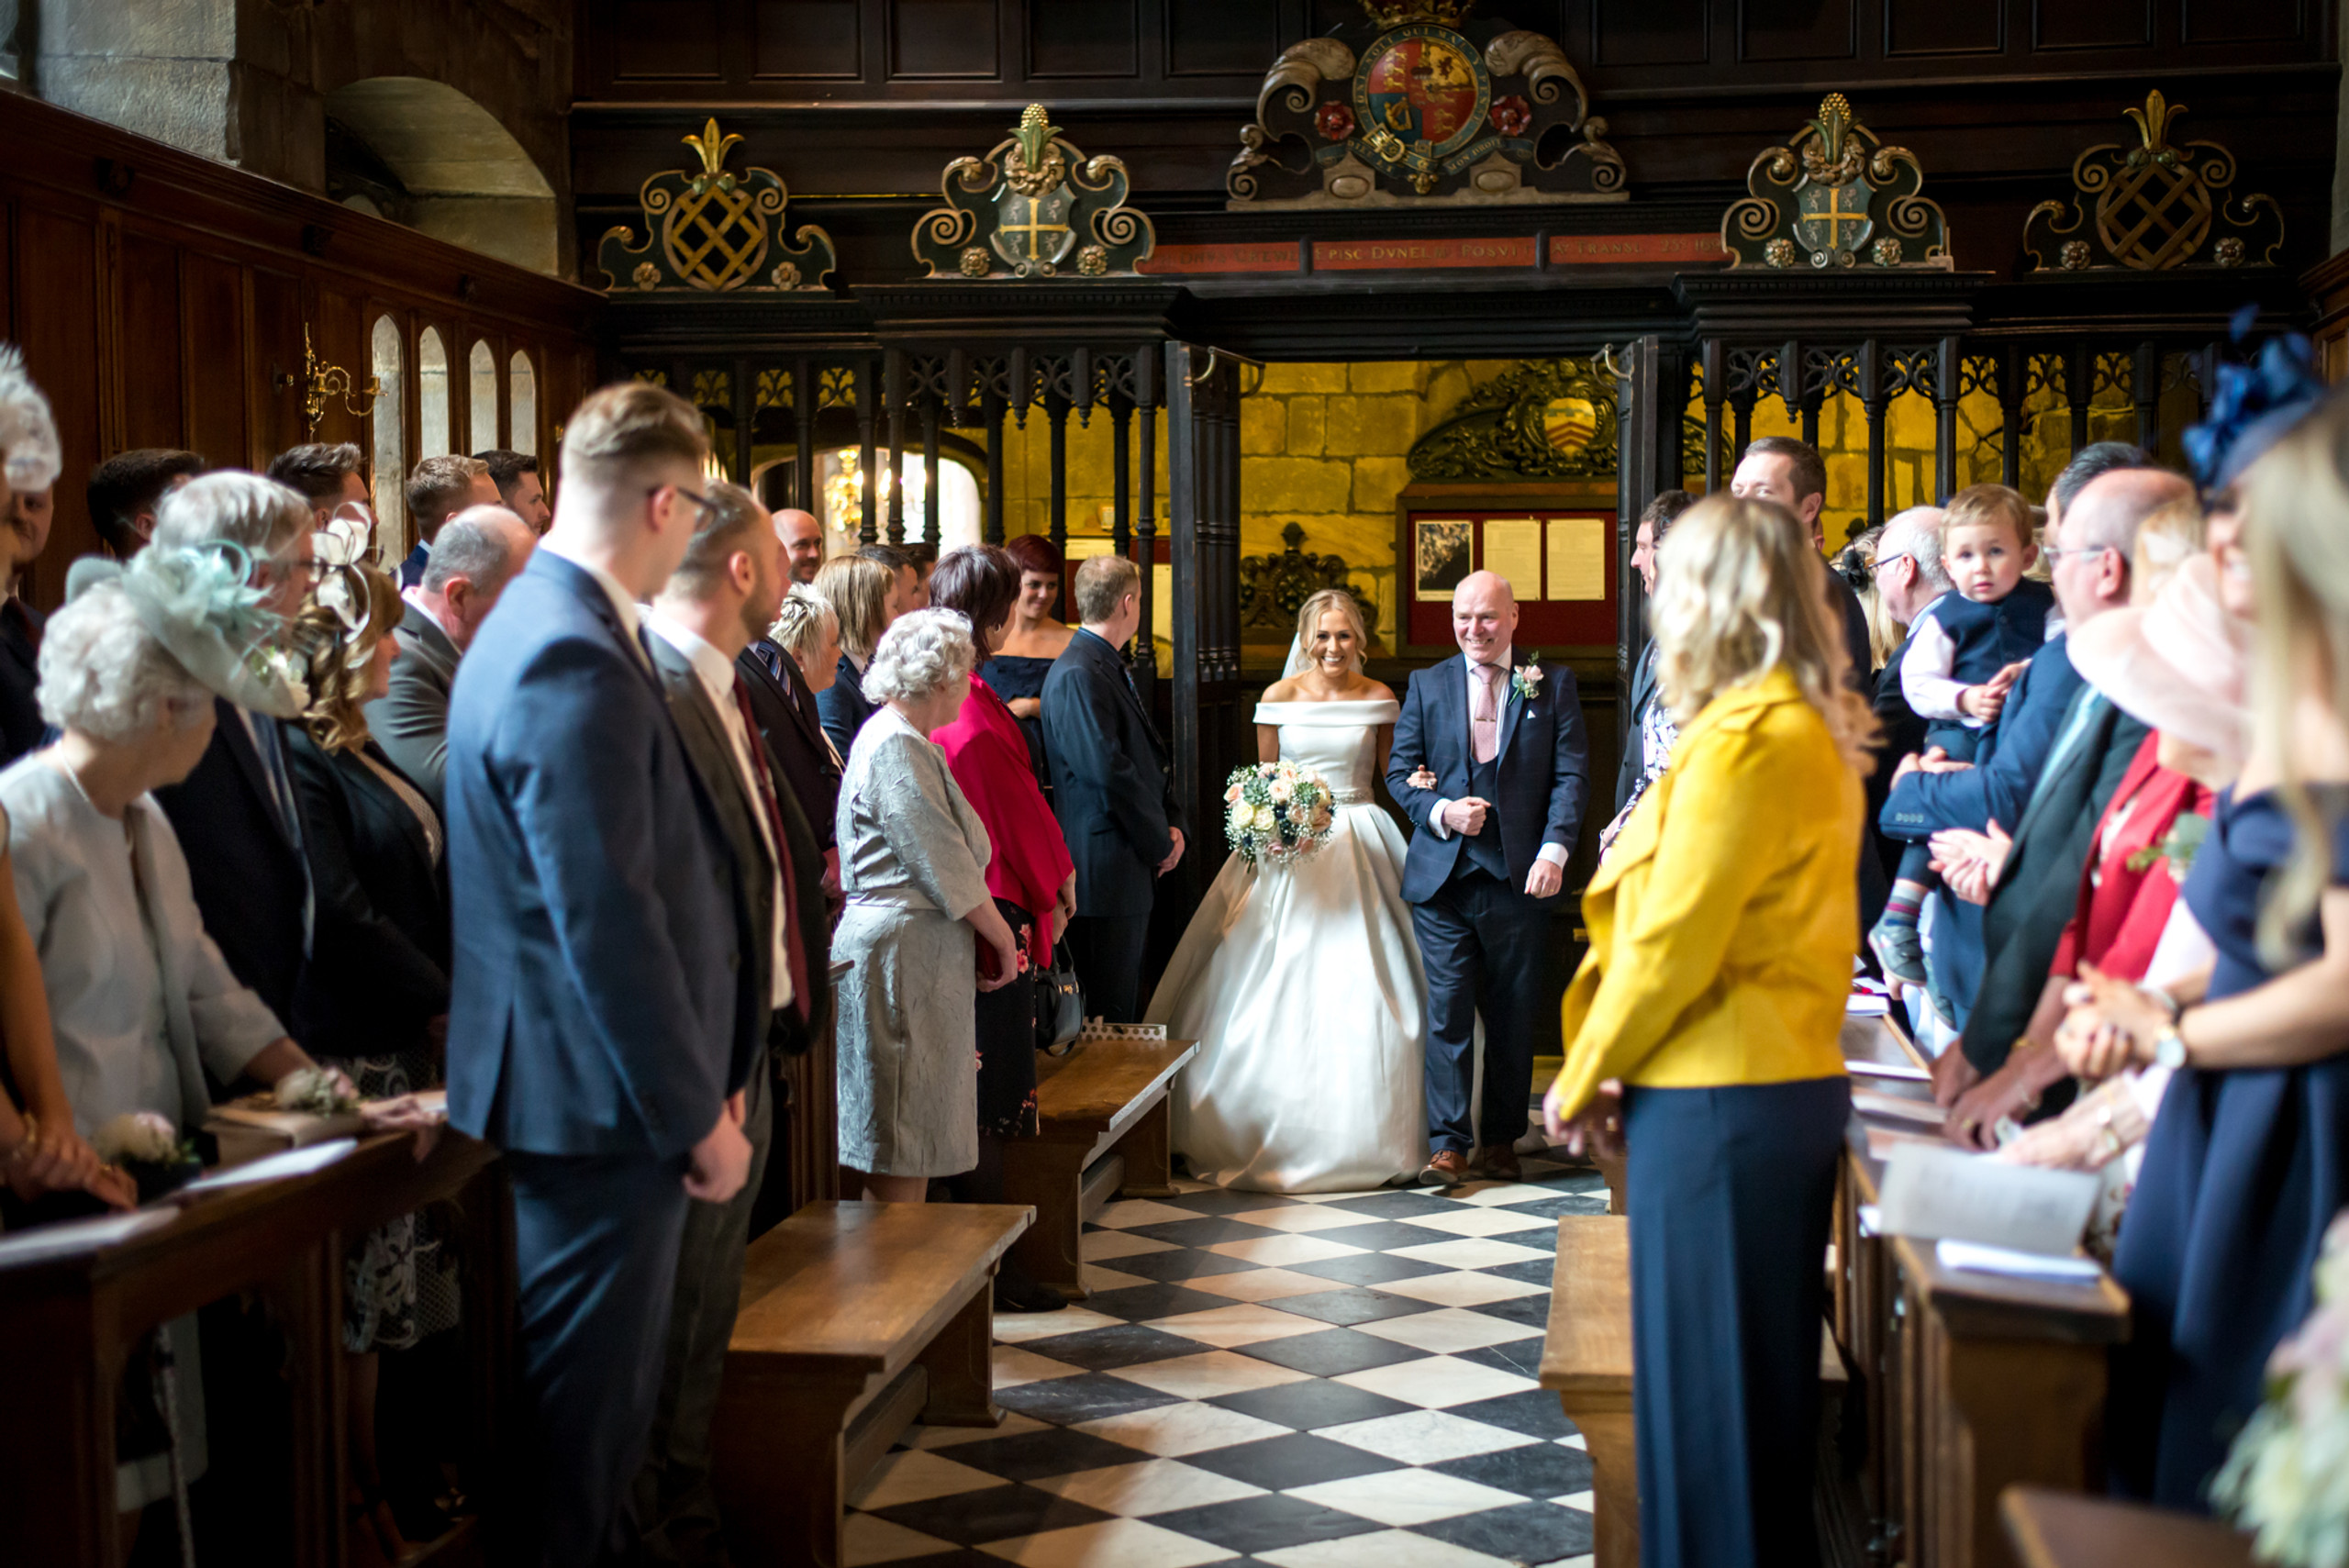 Photograph of relaxed, smiling bride with father walking down the aisle in historic Tunstall Chapel of Durham Castle on day of wedding ceremony